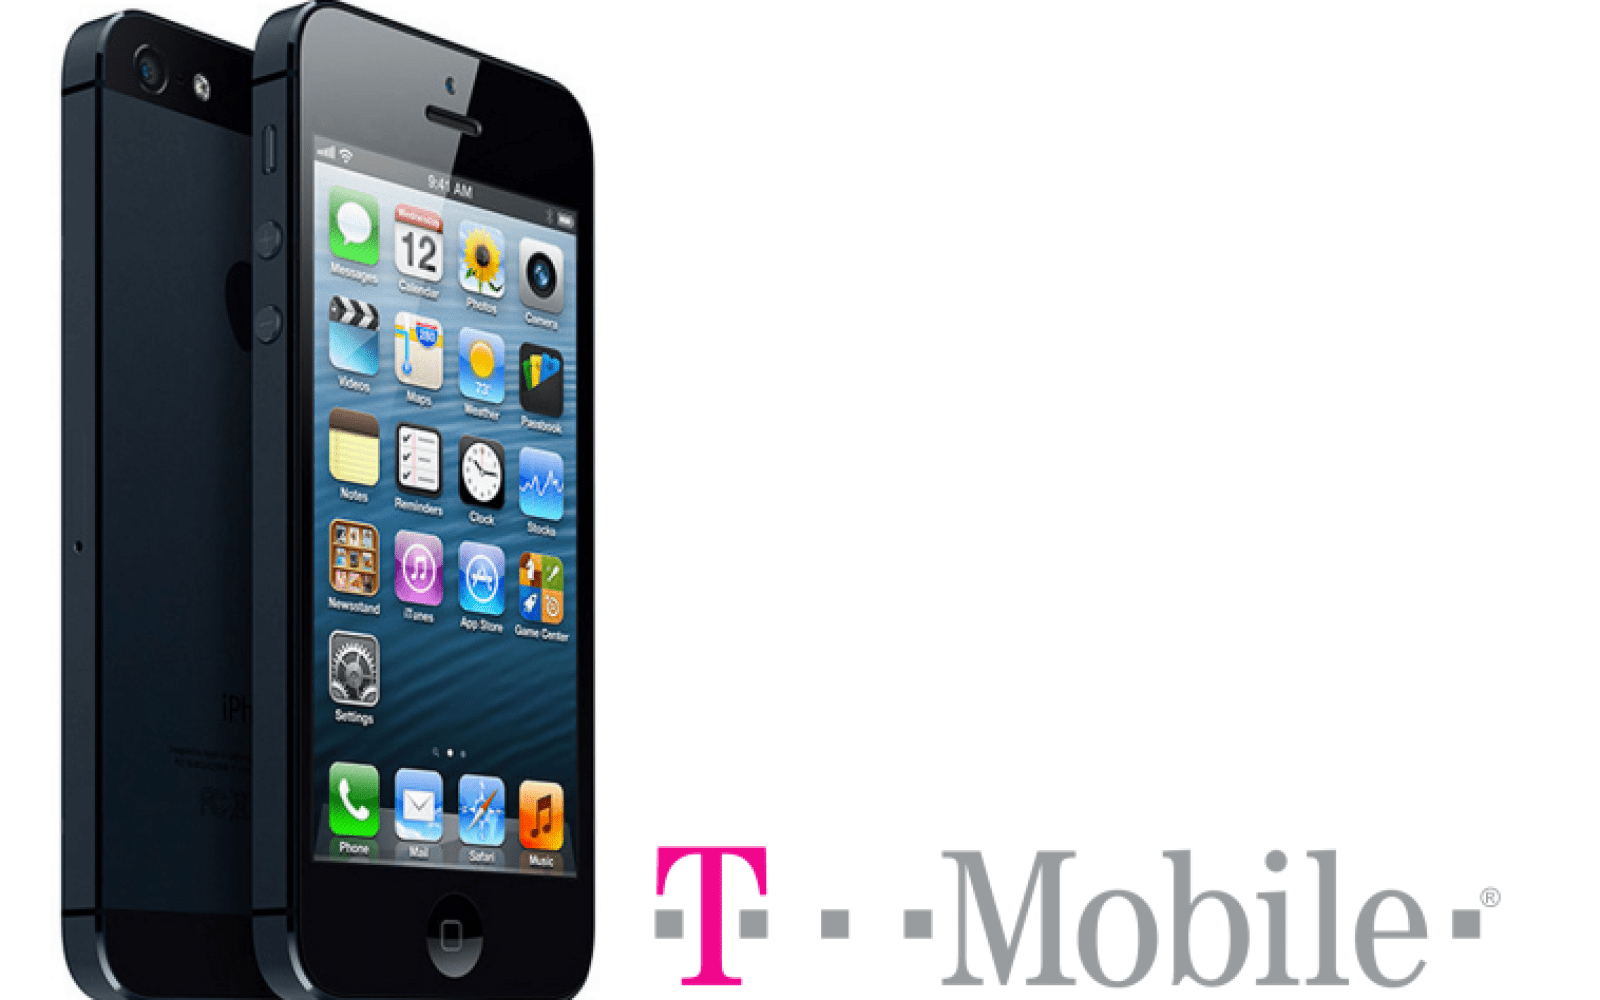 Hackers release modified T-Mobile carrier update file to amplify iPhone 5 cellular speeds (jailbreak unnecessary)